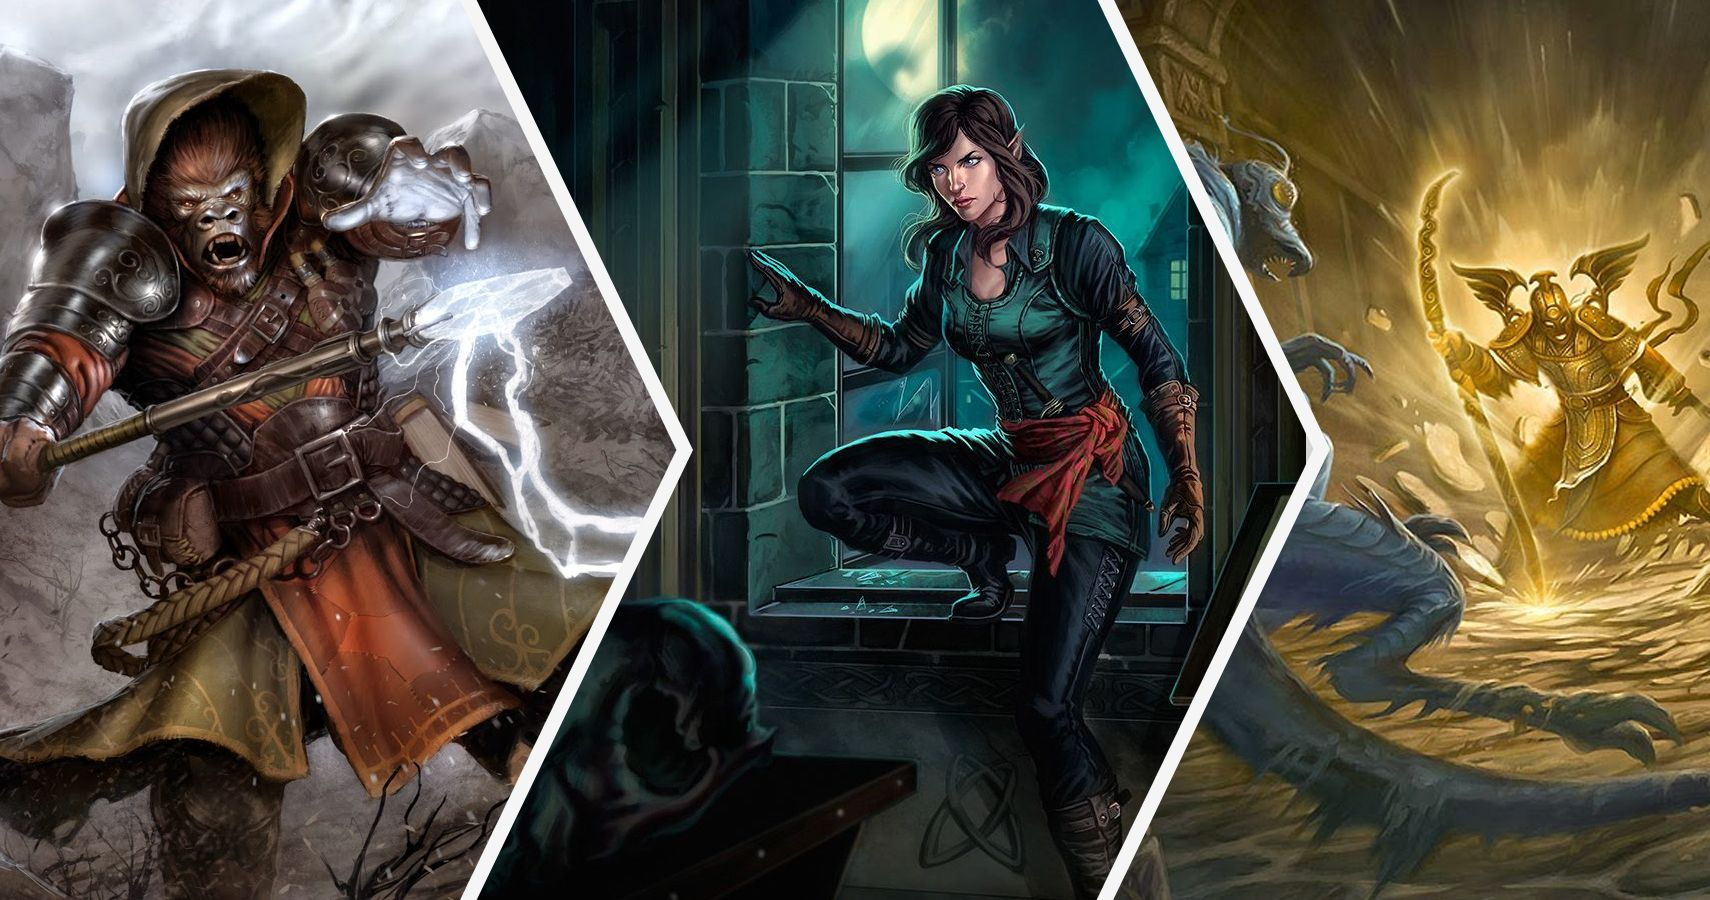 Dungeons & Dragons: The 20 Most Effective Tricks To Beat Spellcasters